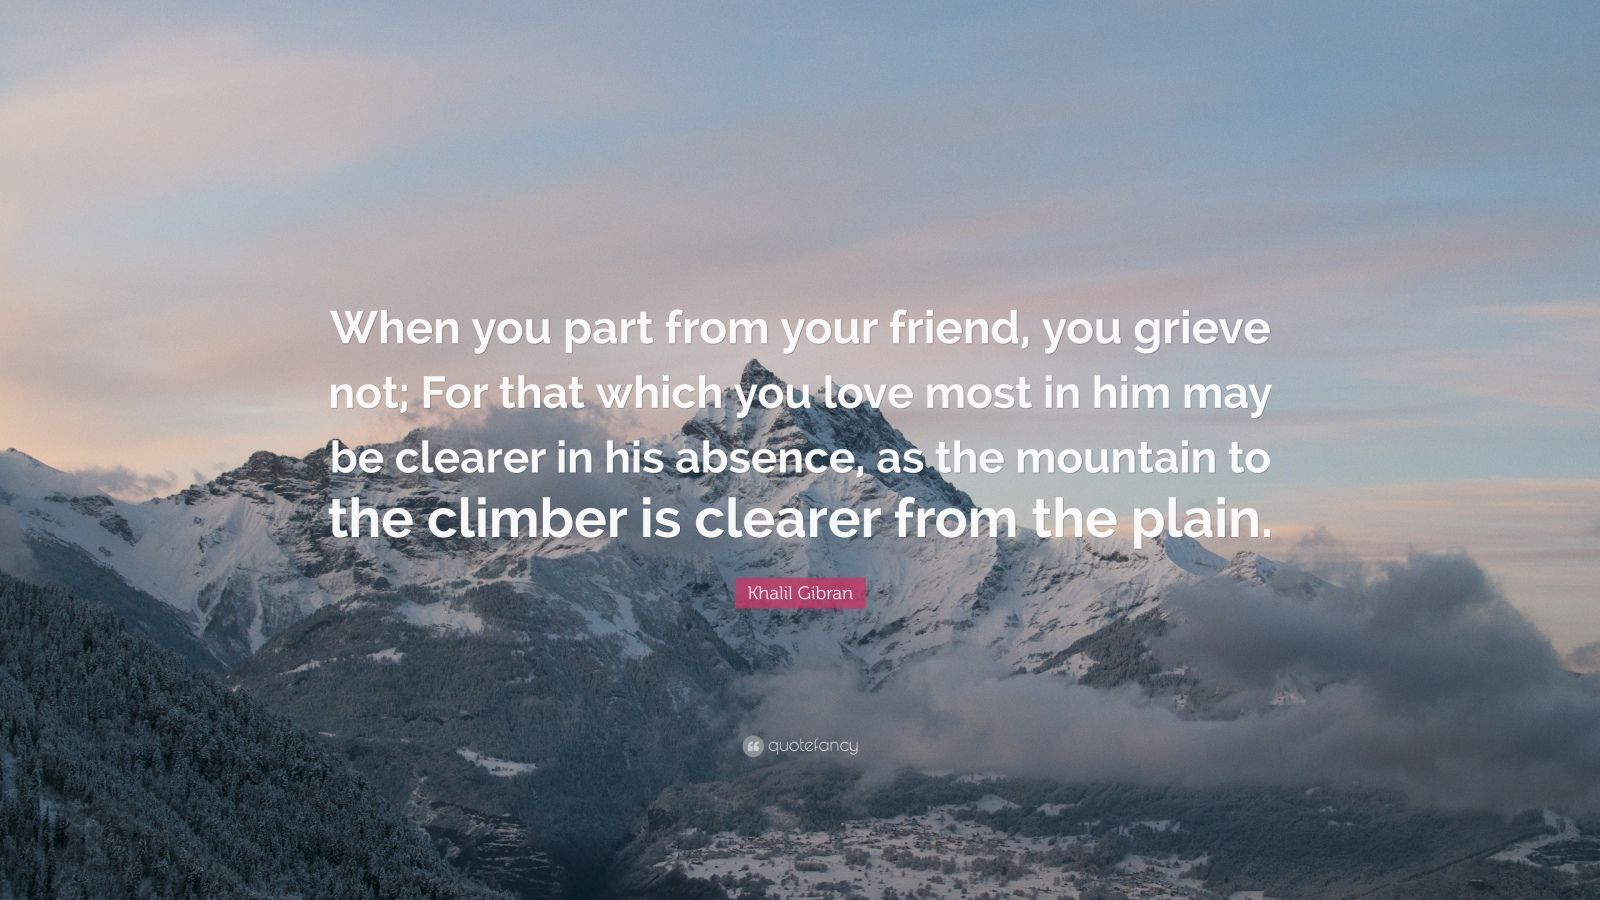 """Khalil Gibran Quote: """"When you part from your friend, you grieve not; For that which you love most in him may be clearer in his absence, as the mountain to the climber is clearer from the plain."""""""